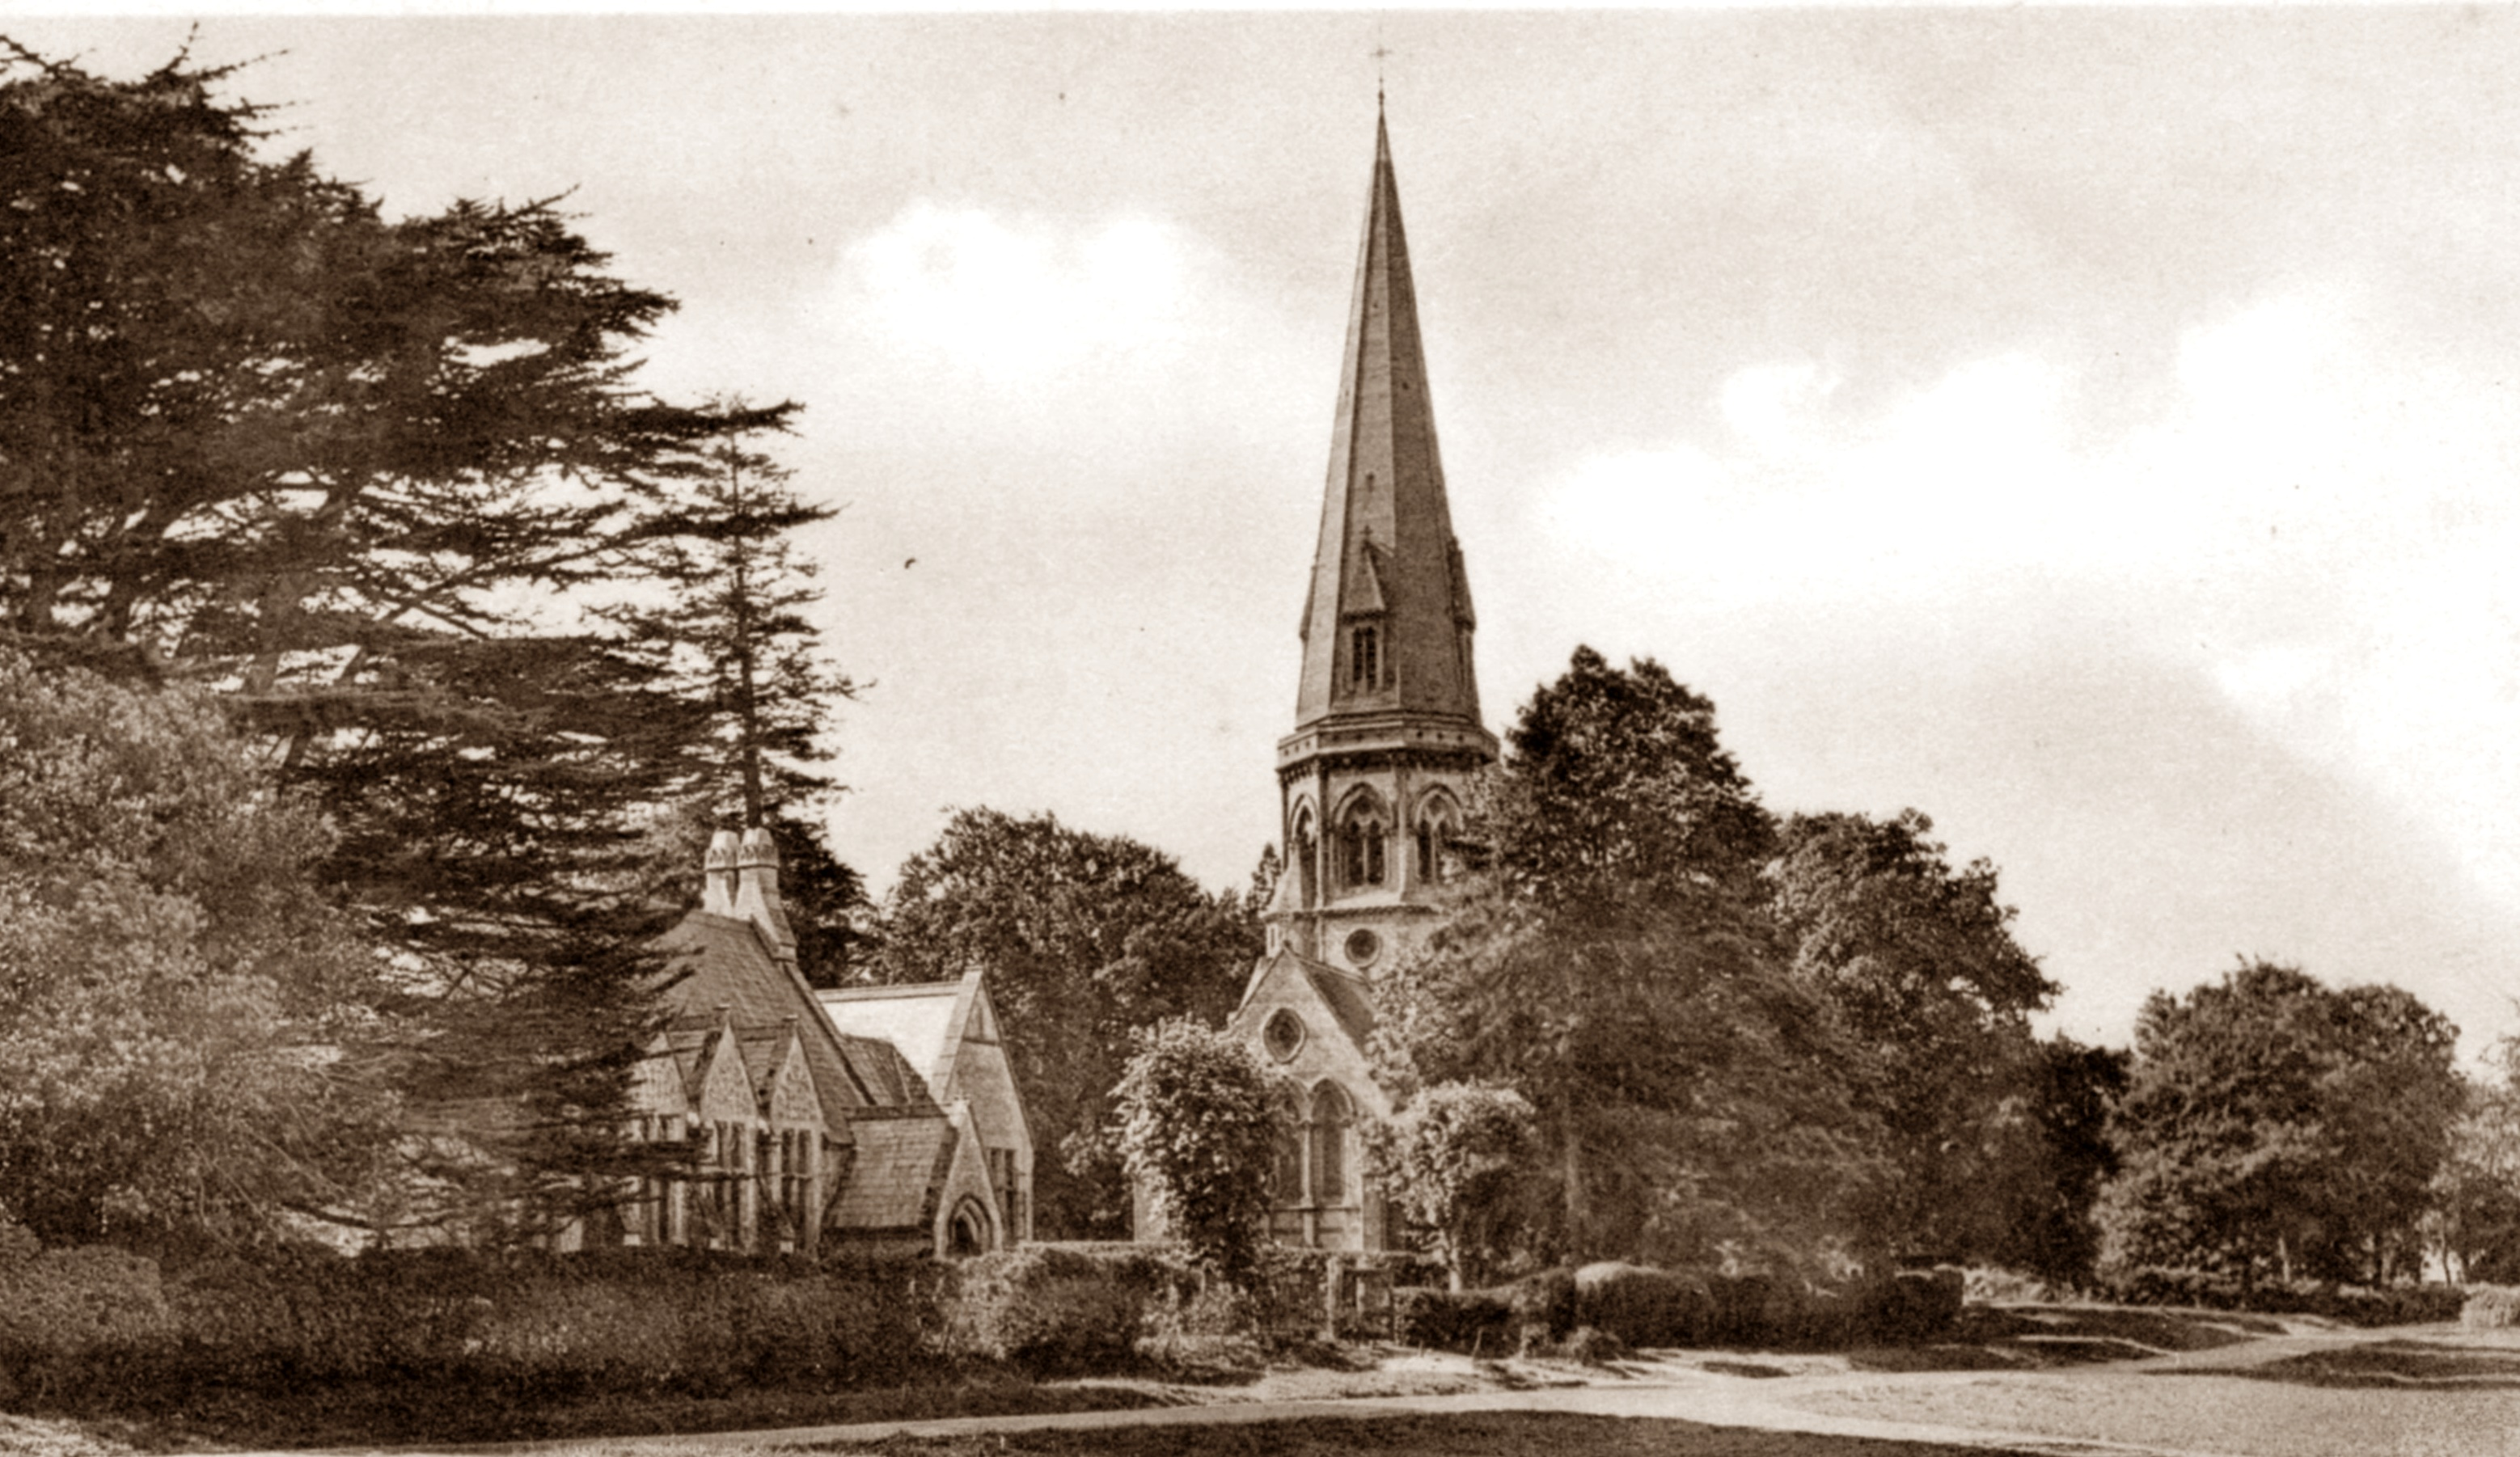 t Barnabas School nestling alongside the Church in 1906, Friths postcard from the collection of Alison